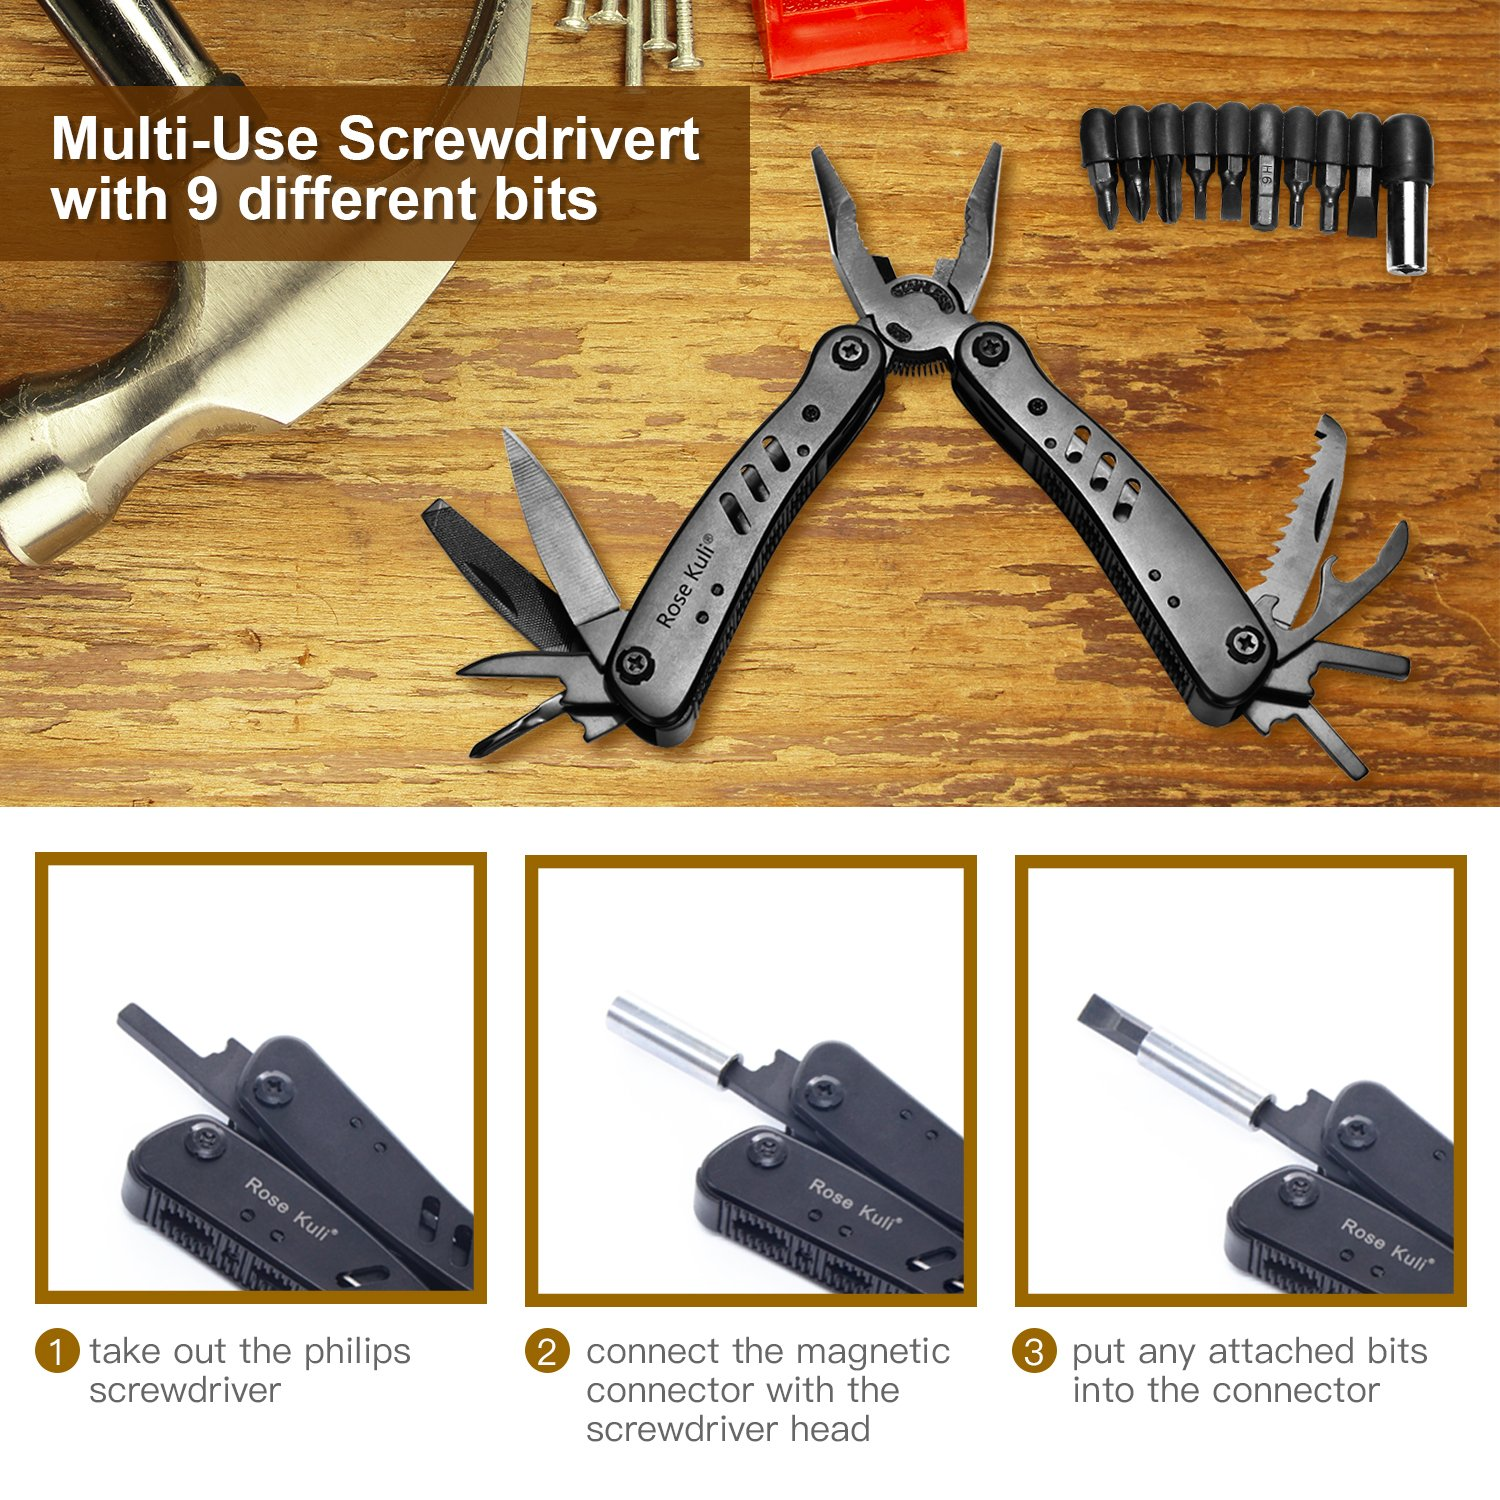 Rose Kuli Multitool Knife Pliers 12 in 1 Portable Pocket Multifunctional Multi Tools with Folding Saw Wire Cutter Mini Screwdrivers Set For Outdoor Camping Survival by ROSE KULI (Image #4)